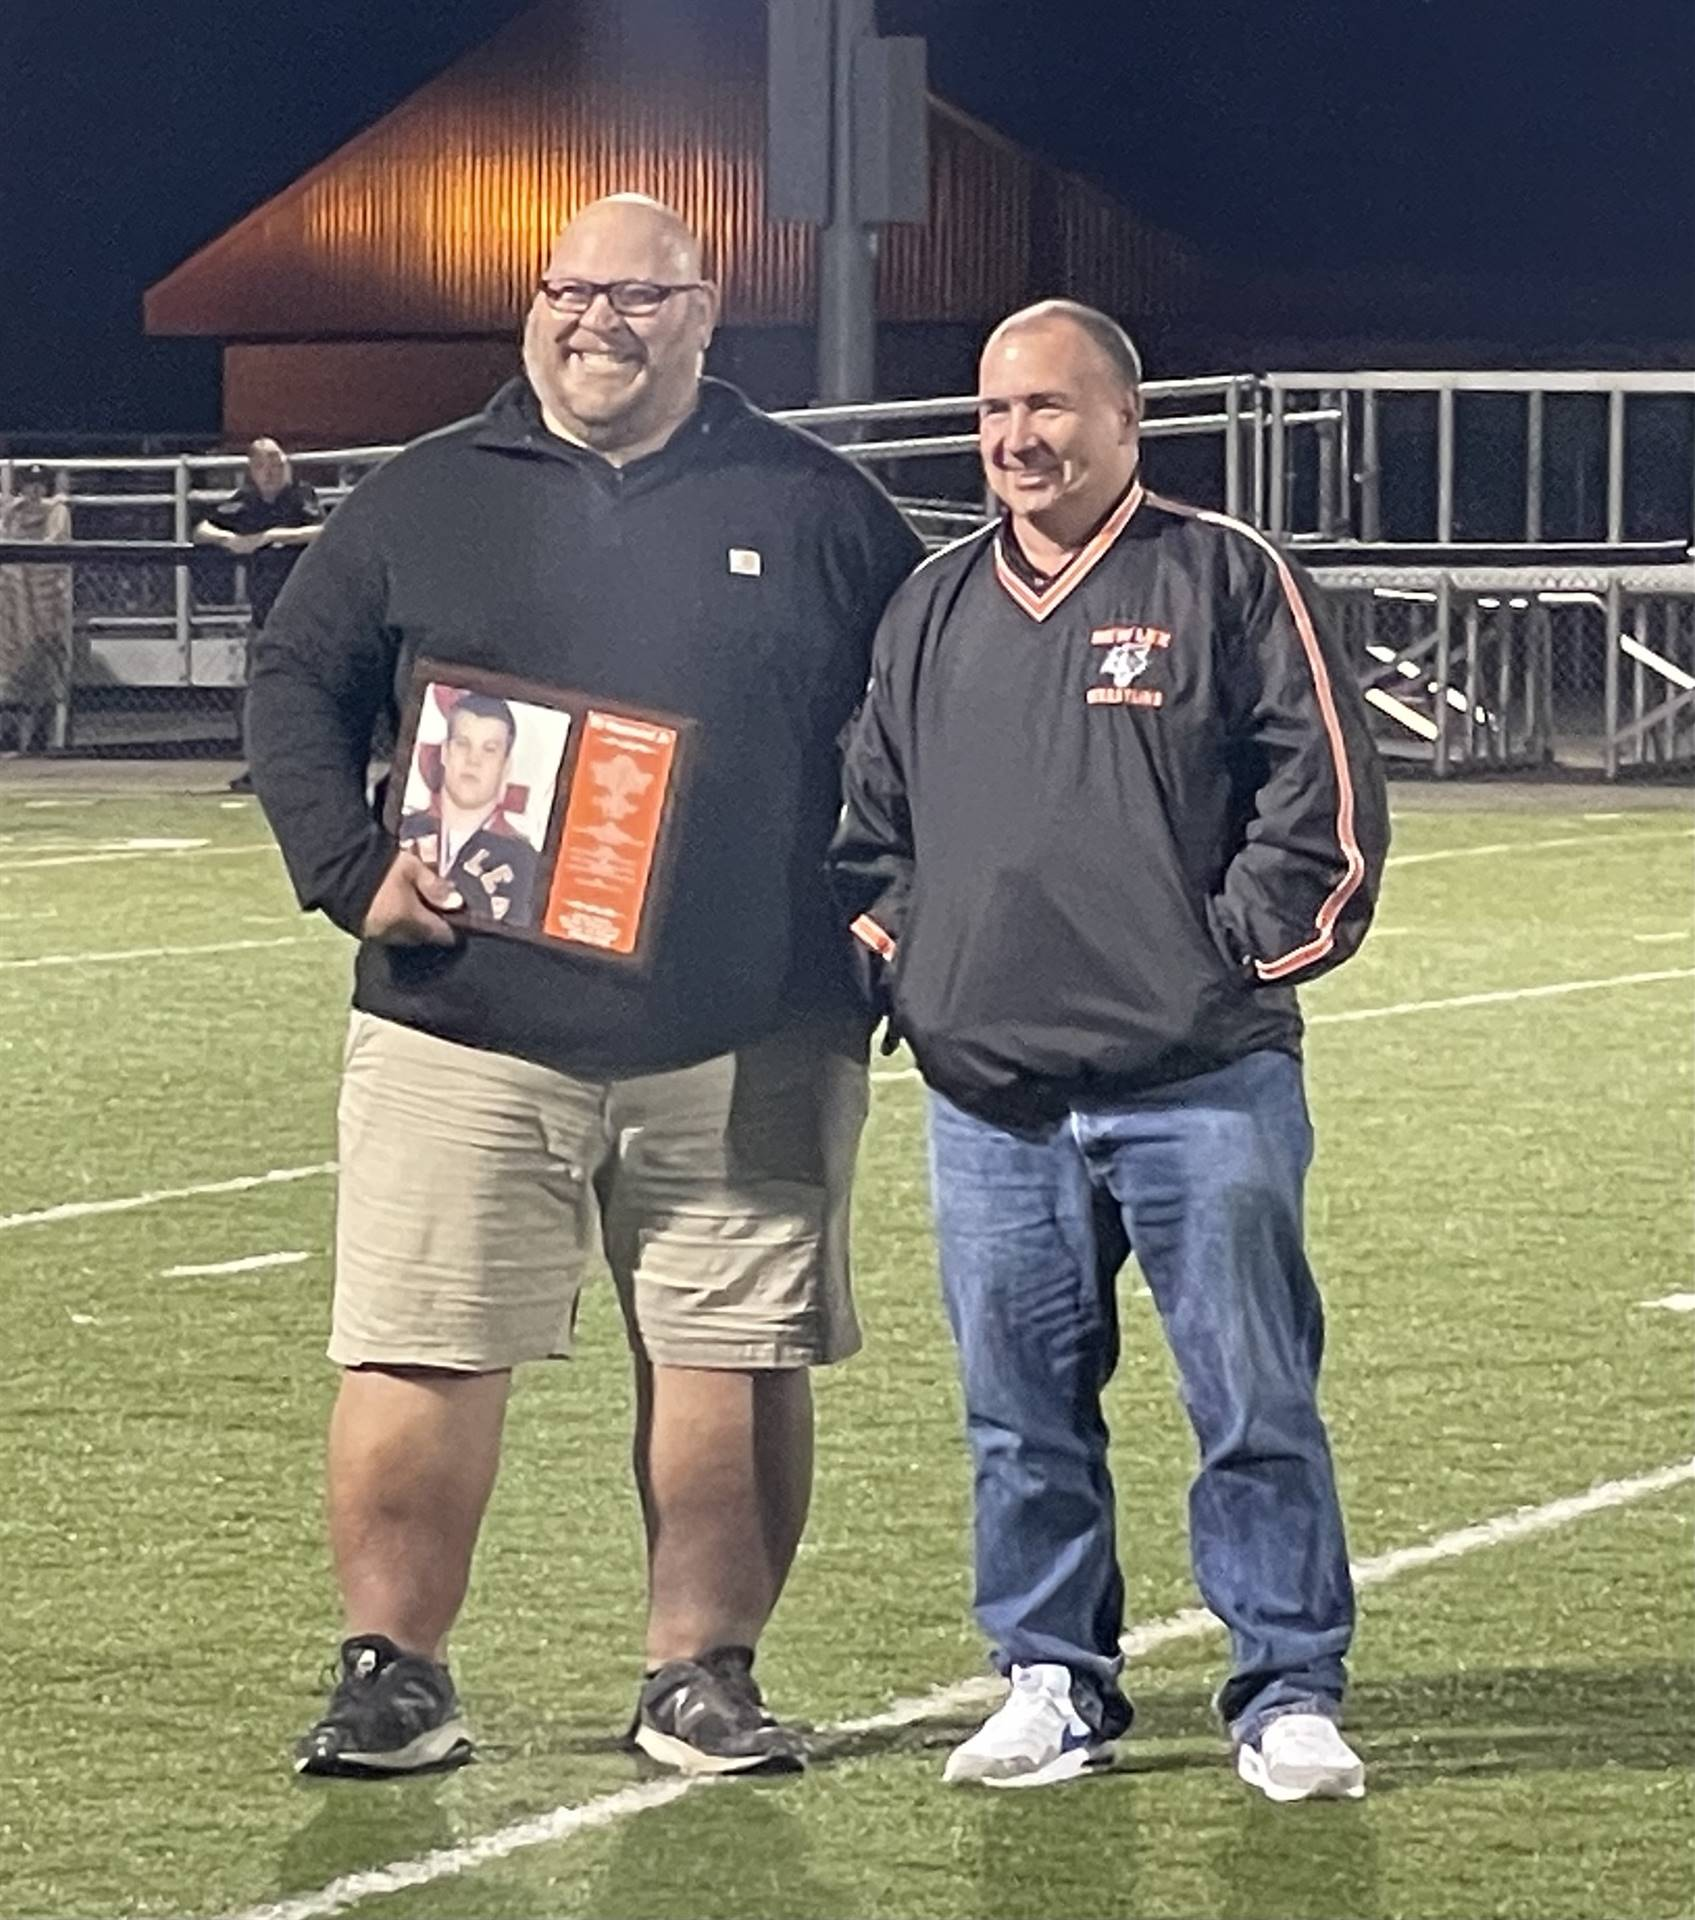 Congratulations to our 2021 and 2022 Hall of Fame Inductees